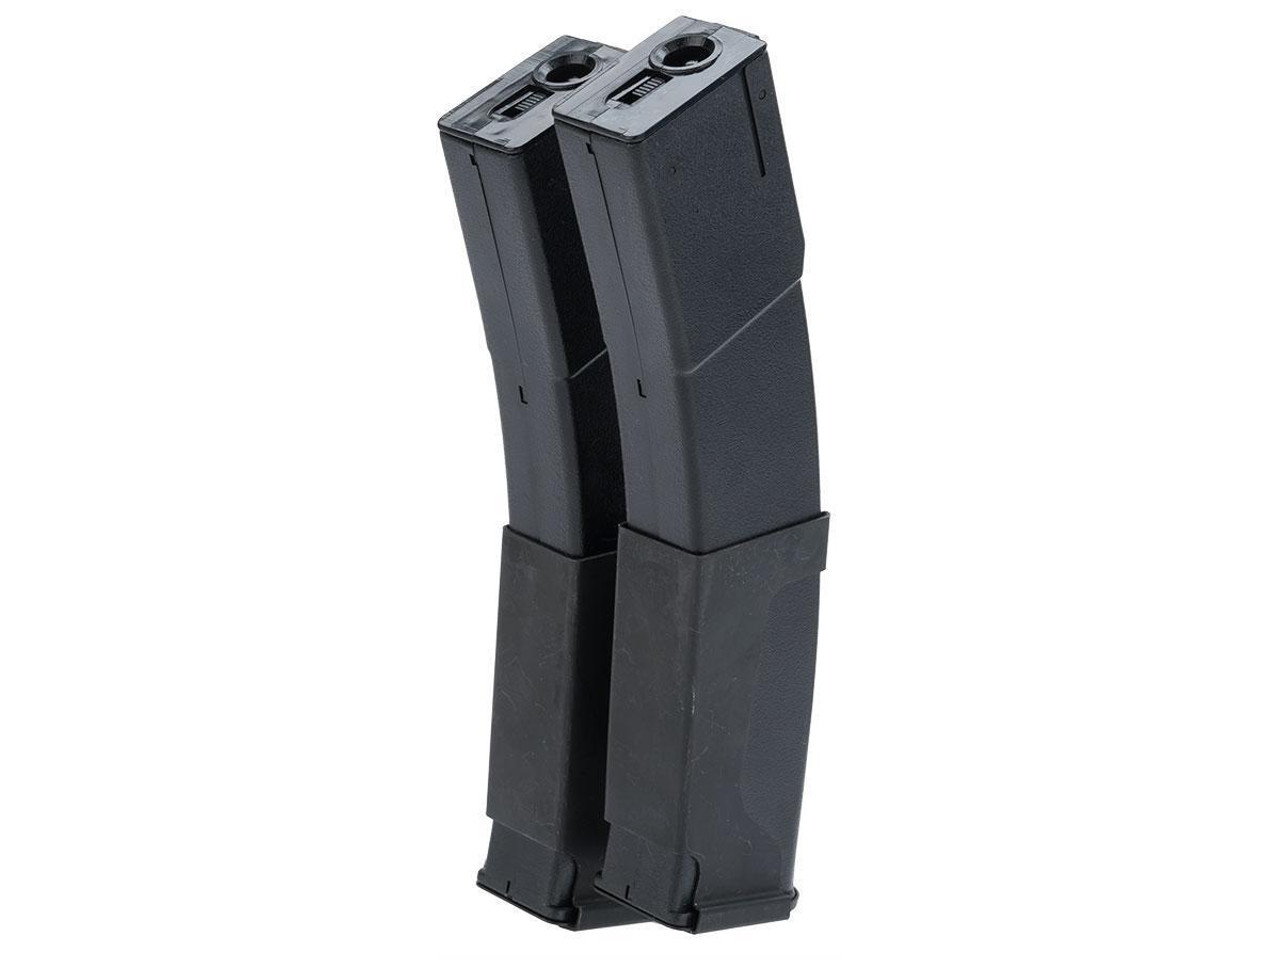 LCT Airsoft PP-19-01 Mid-Cap Magazine    50rd / Set of 2